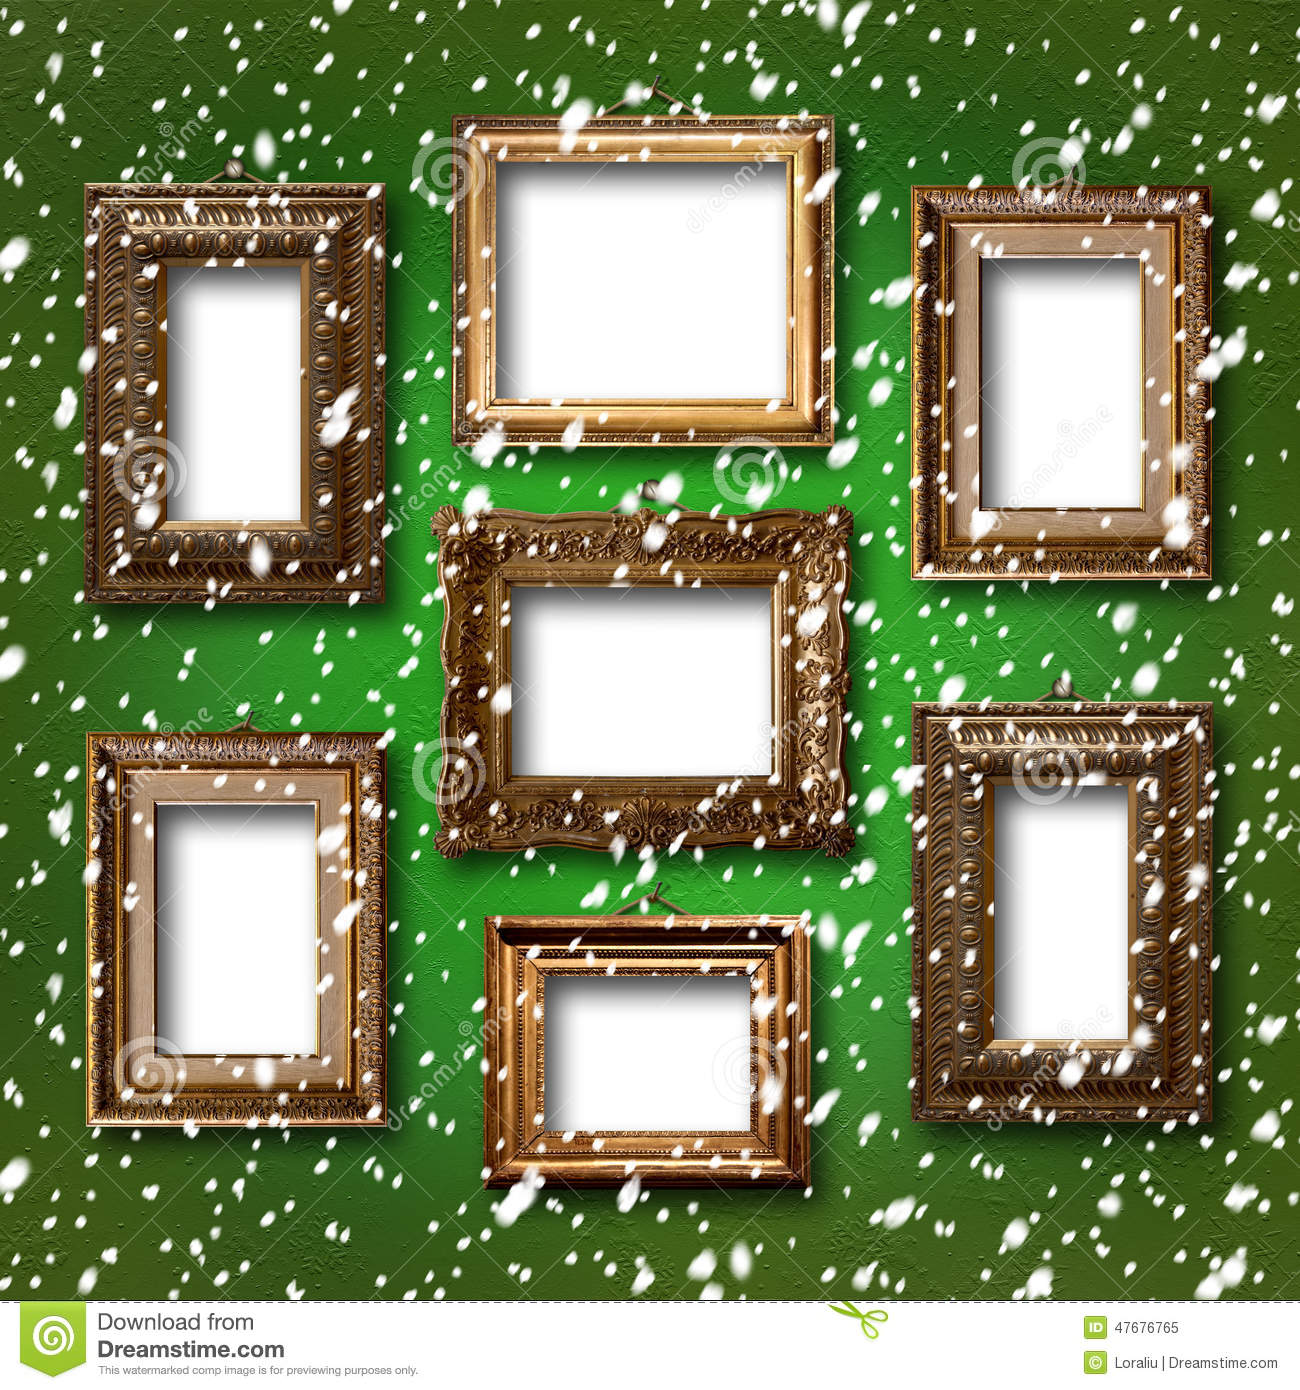 Gilded wooden frames for pictures on abstract background